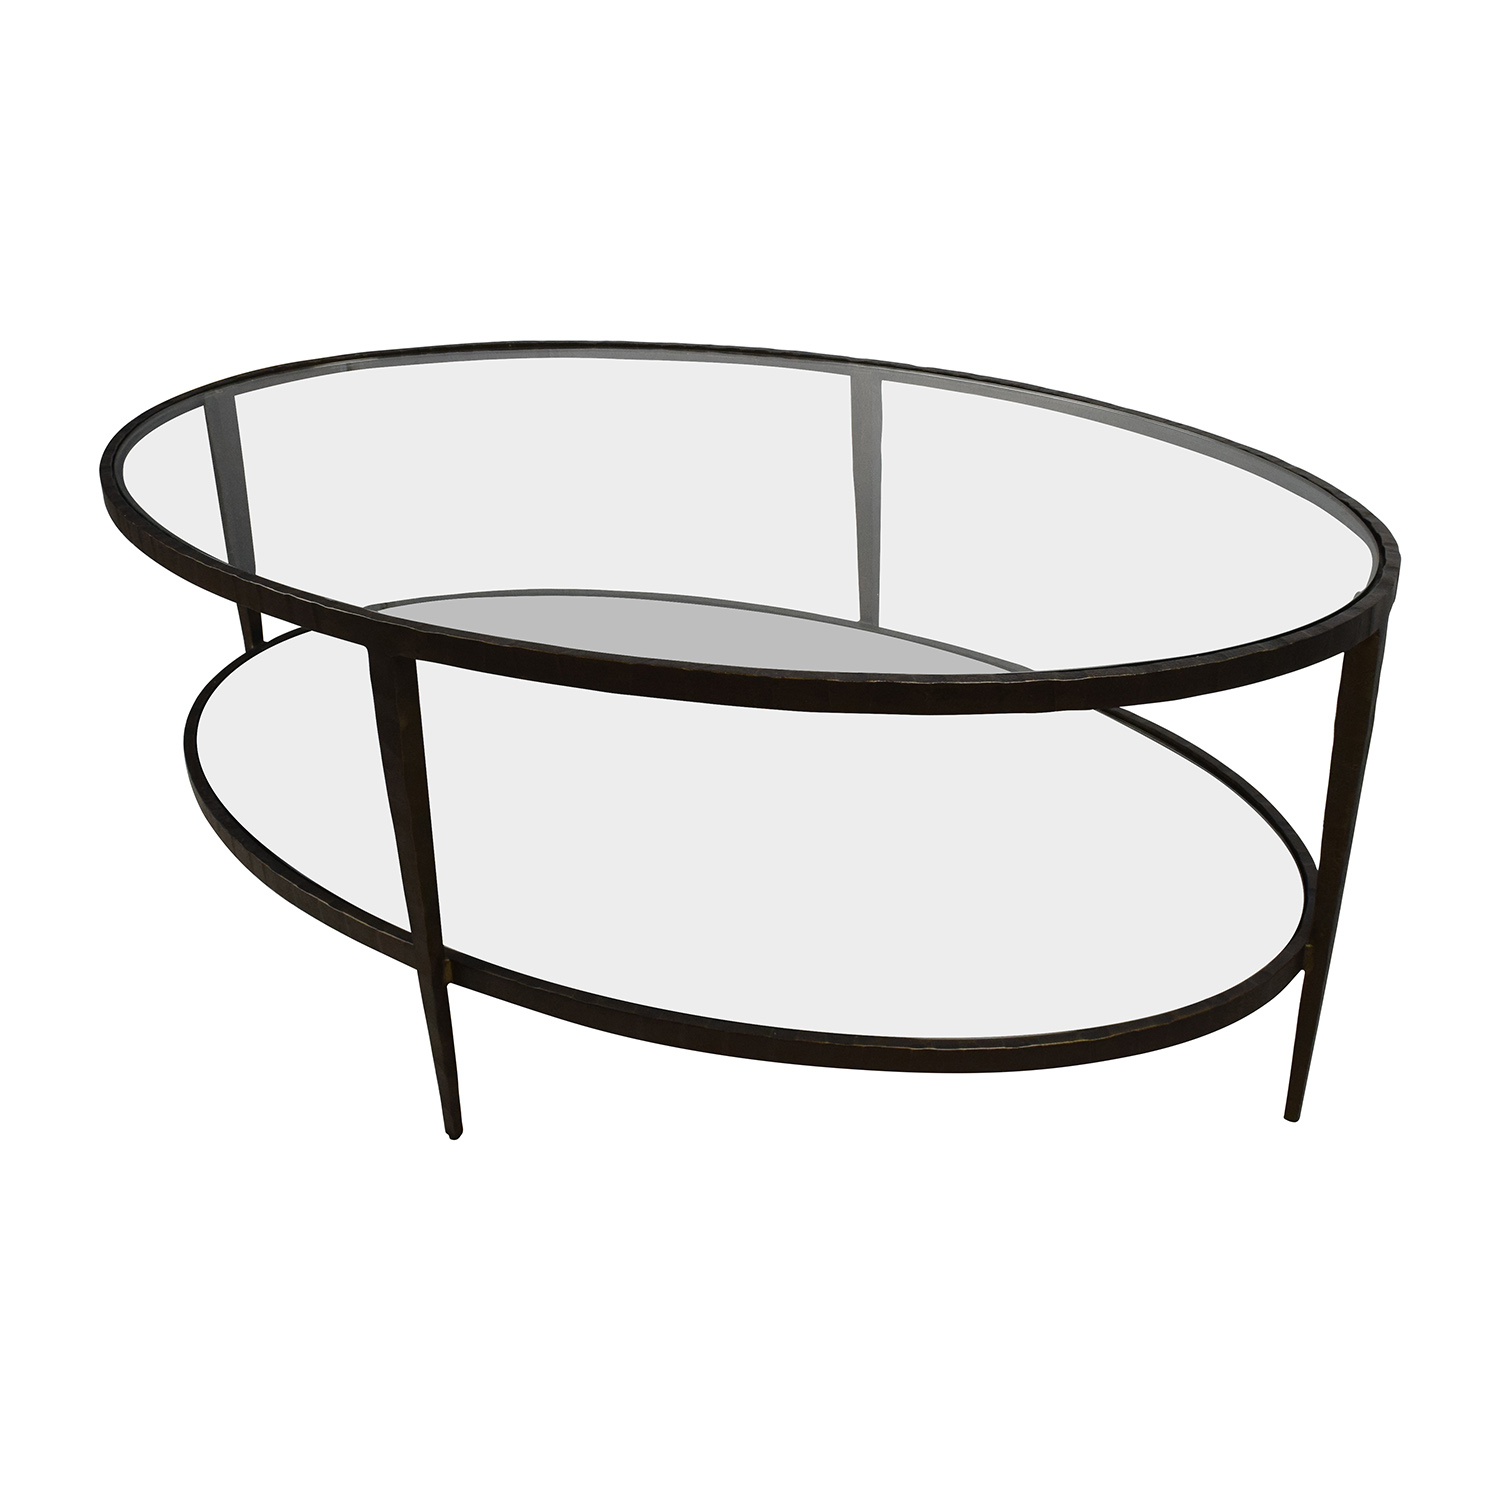 shop Crate & Barrel Clairmont Glass Coffee Table Crate & Barrel Coffee Tables